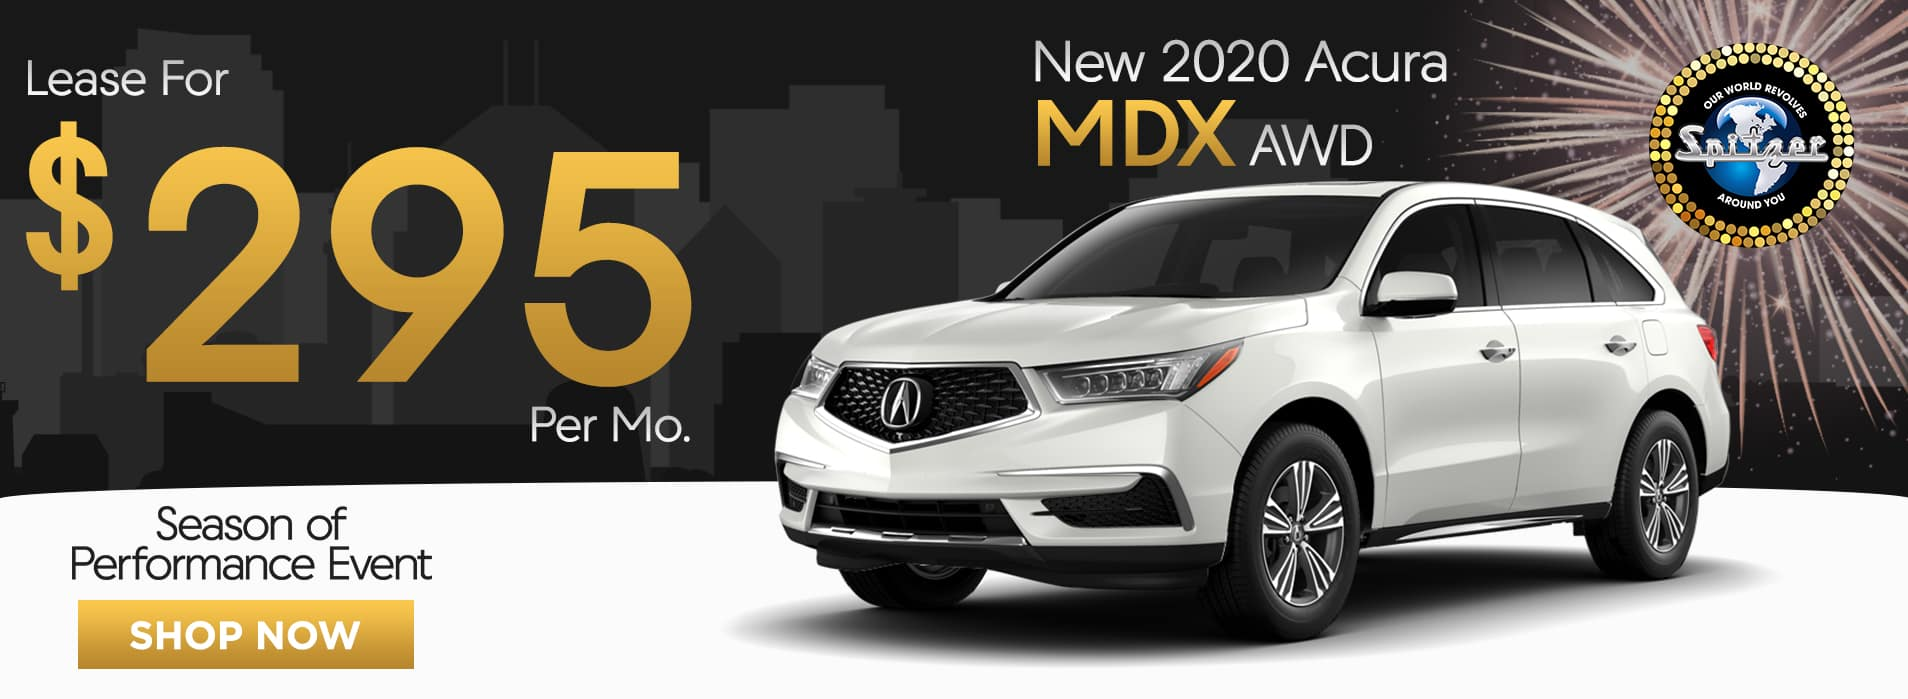 MDX | Lease for $295 per mo